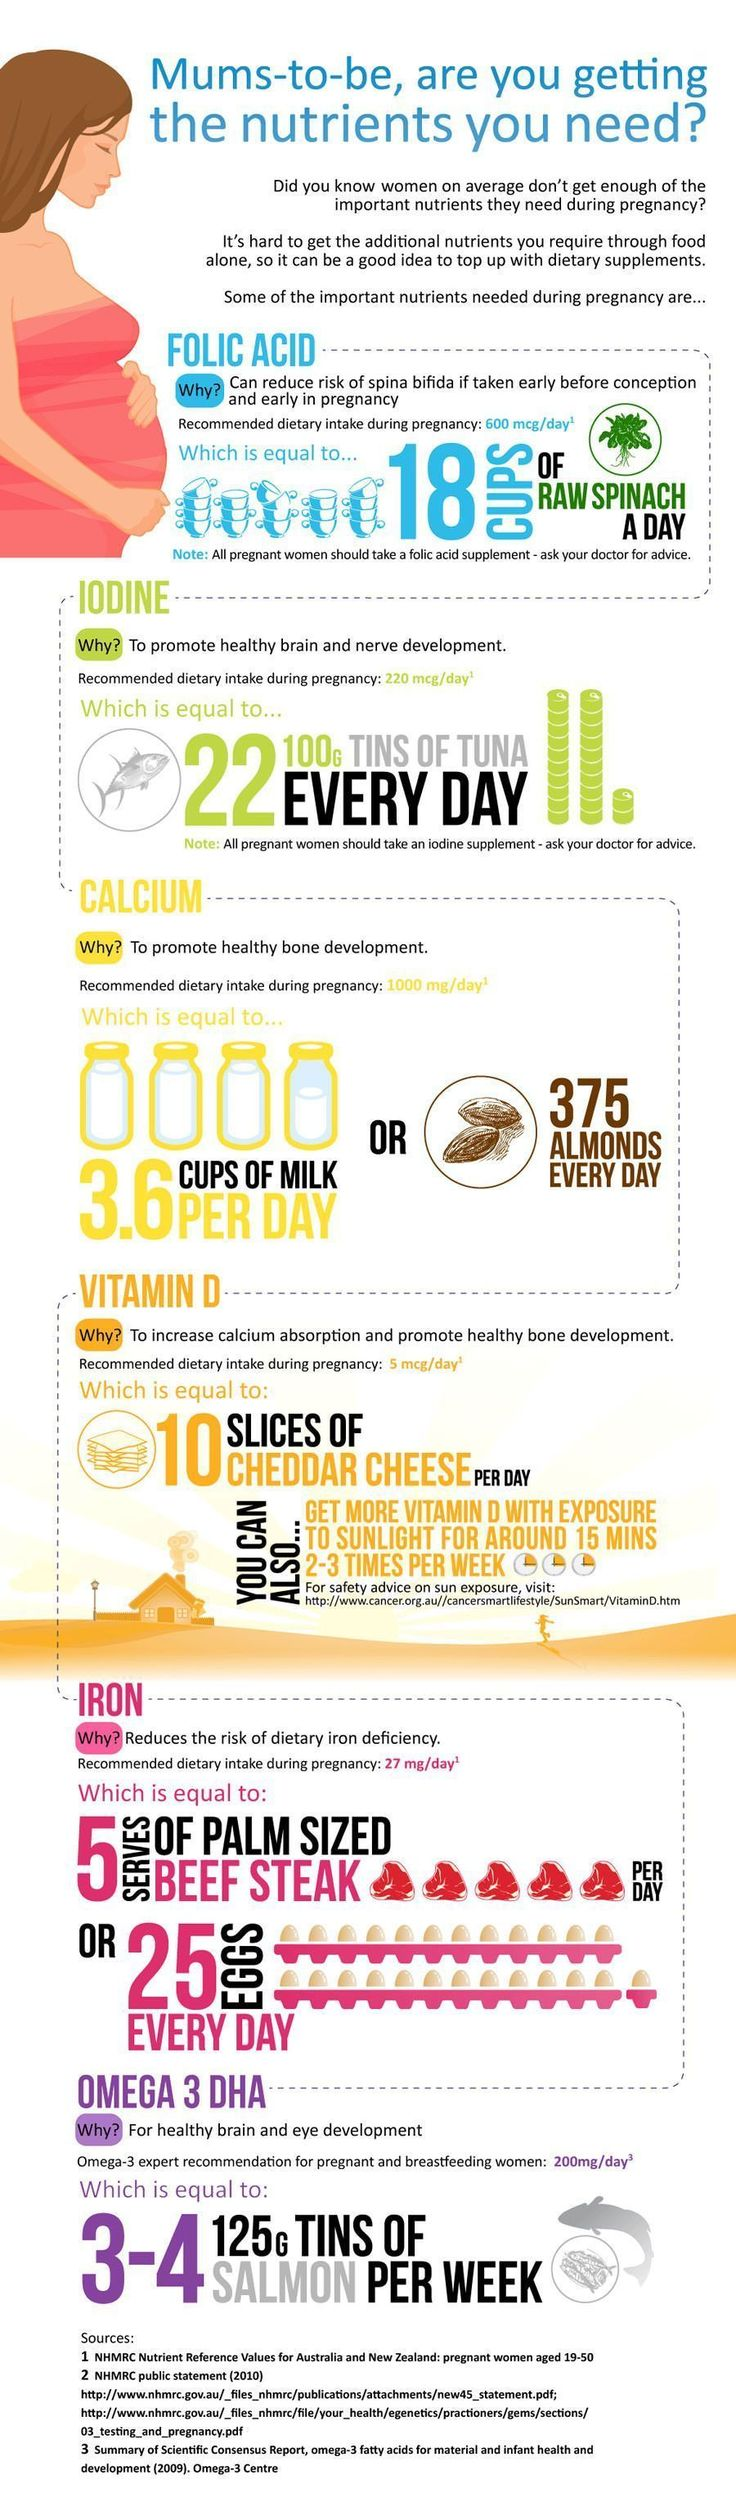 Interesting Facts On Pregnancy Nutrition Infographic - Good Info - Be Sure Organic is chosen whenever possible and Tuna may not be the best option when looking at heavy metal content. Here are some tips on Iodine supplementation: http://natural-fertility-info.com/iodine-preconception-and-pregnancy-health.html #NutritionInfographic